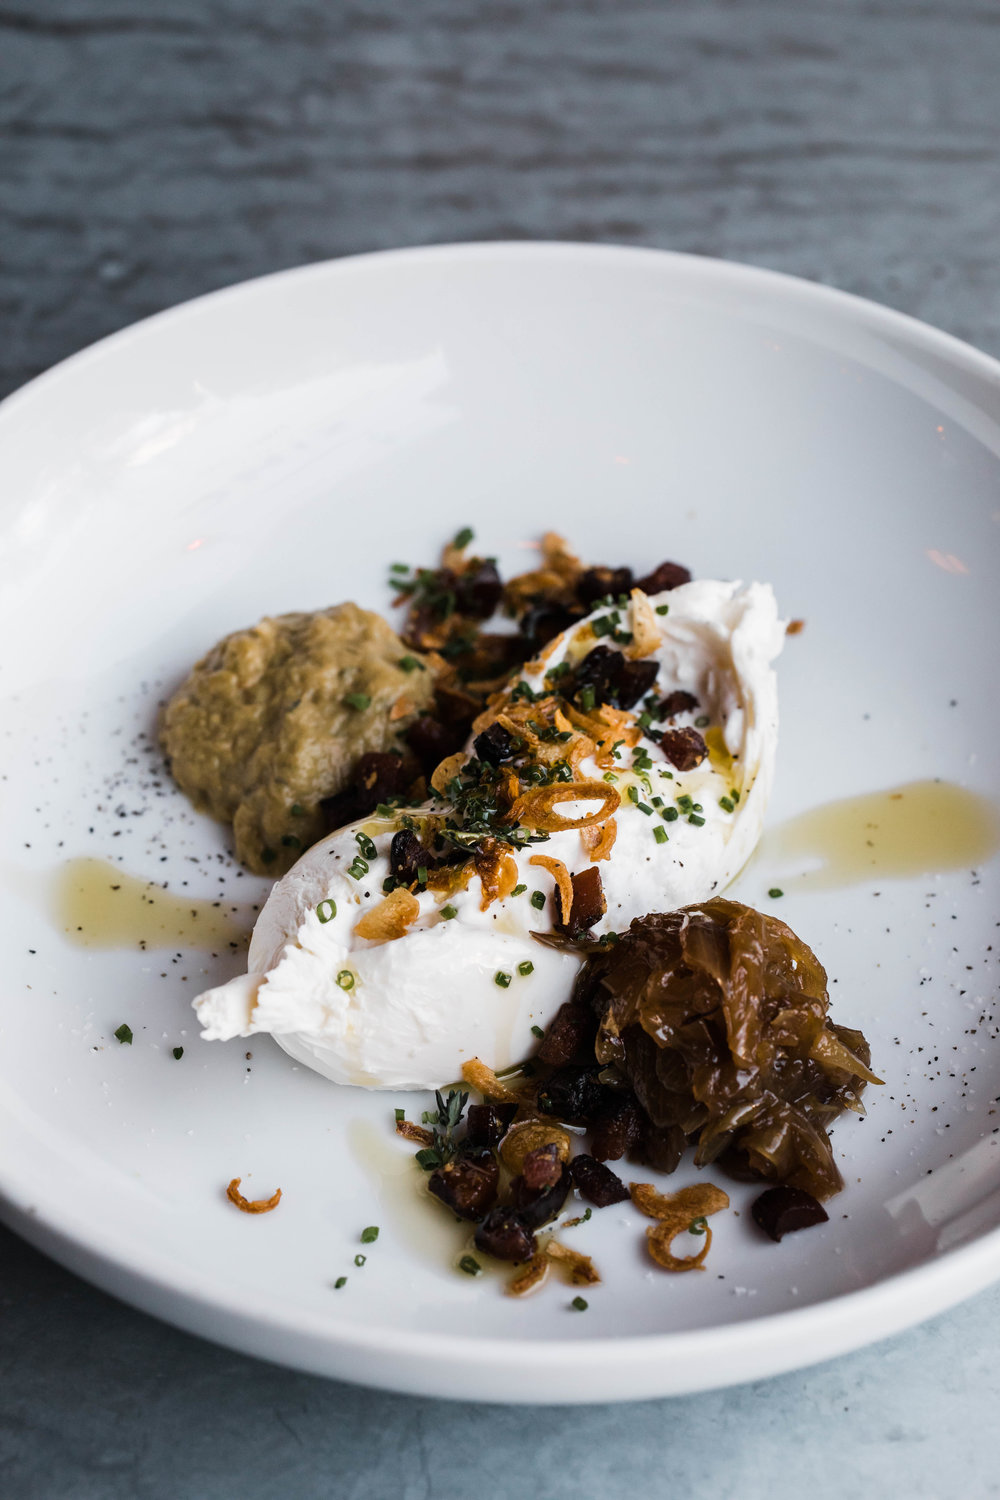 Fresh Burrata    Shallot Jam/ Bacon Gremolata/ Melted Leek Puree/Fennel Pollen